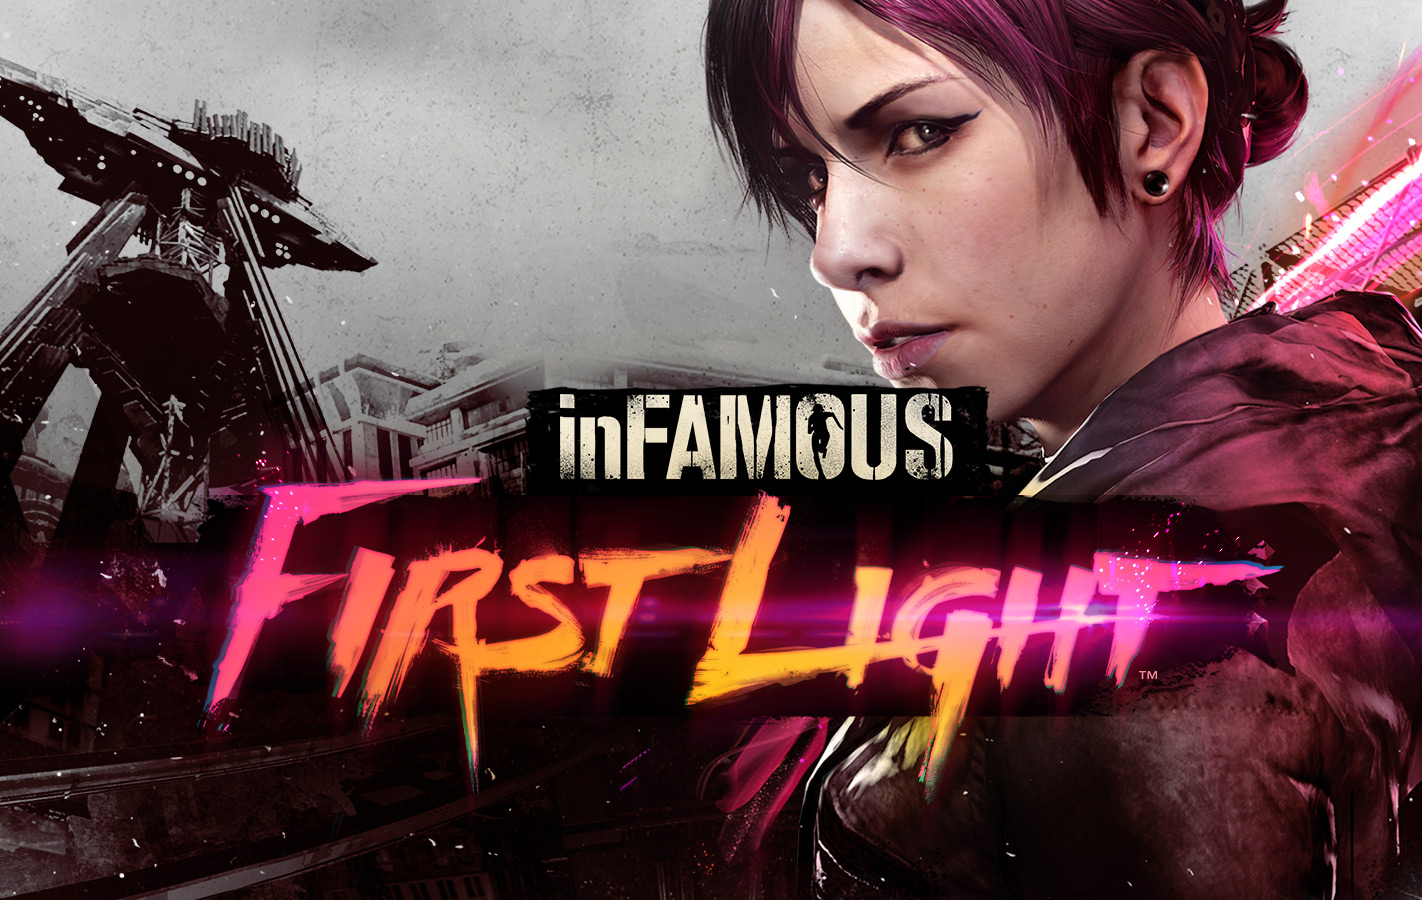 infamous-first-light-listing-thumb-01-09jun14 (1)